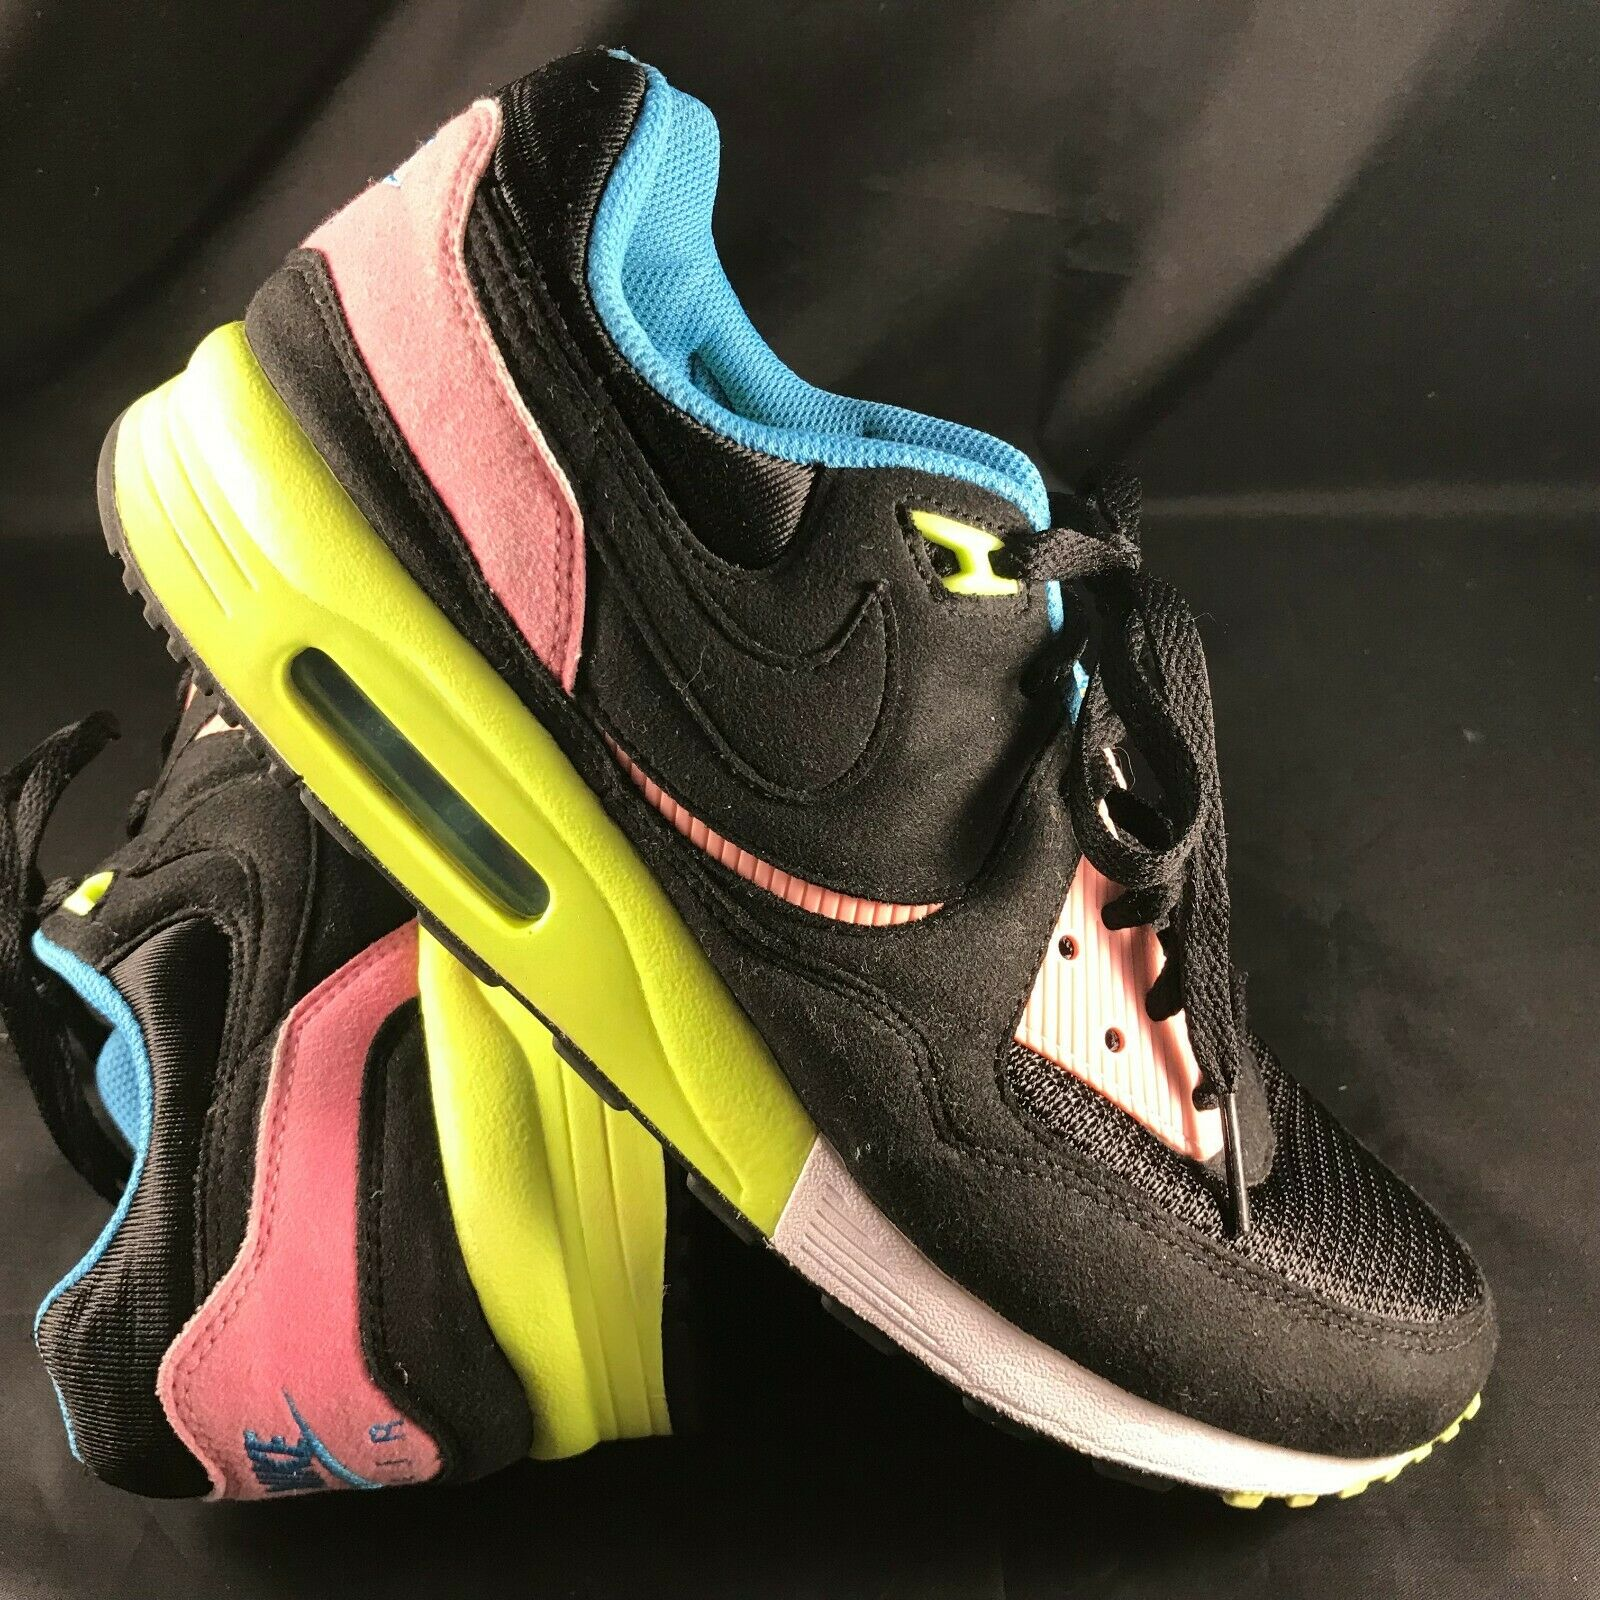 2008 Nike Air Max Light QS Sz. 9 Black Pink Volt Mita Trainer 333623-002 90 1